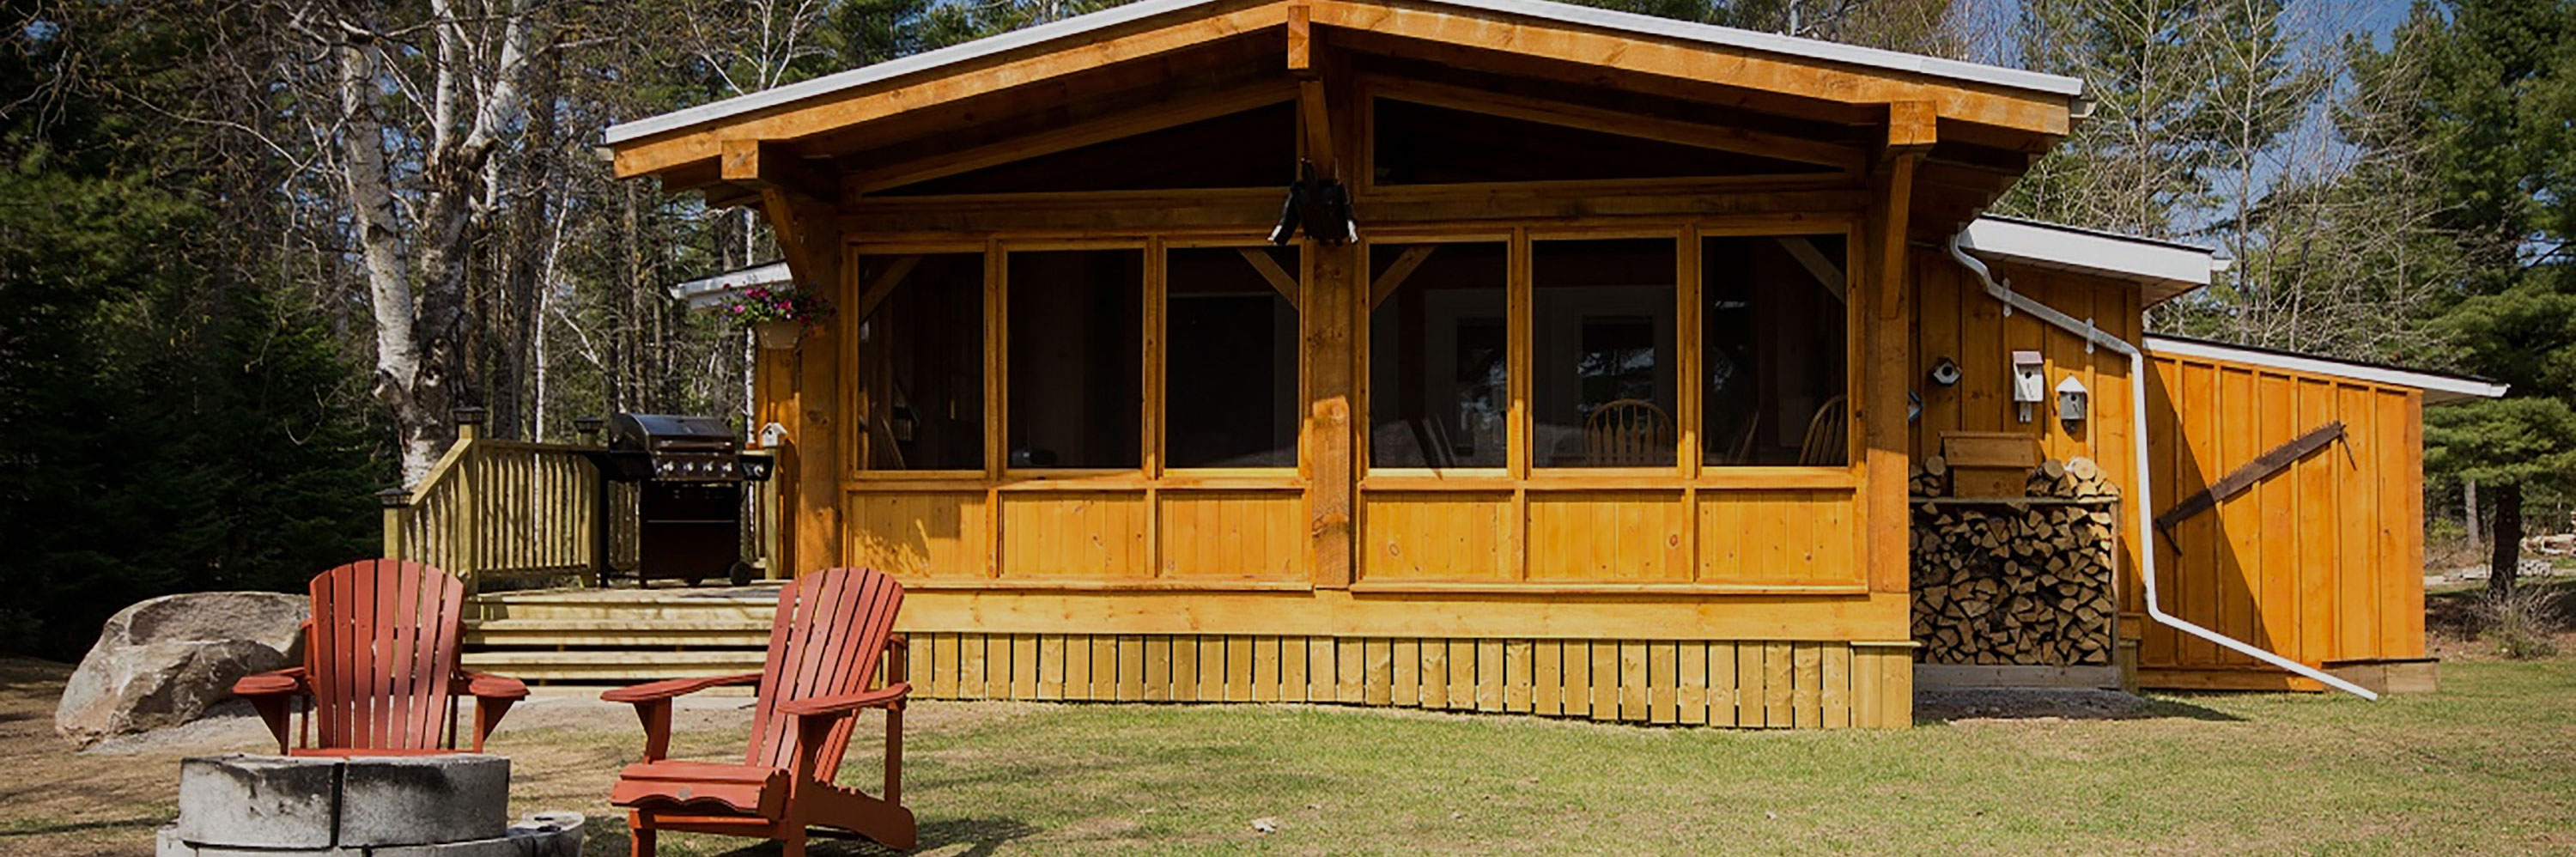 cardinal, cottage rental, amenities, snowbird summer haven resort, white lake, Ontario, Canada